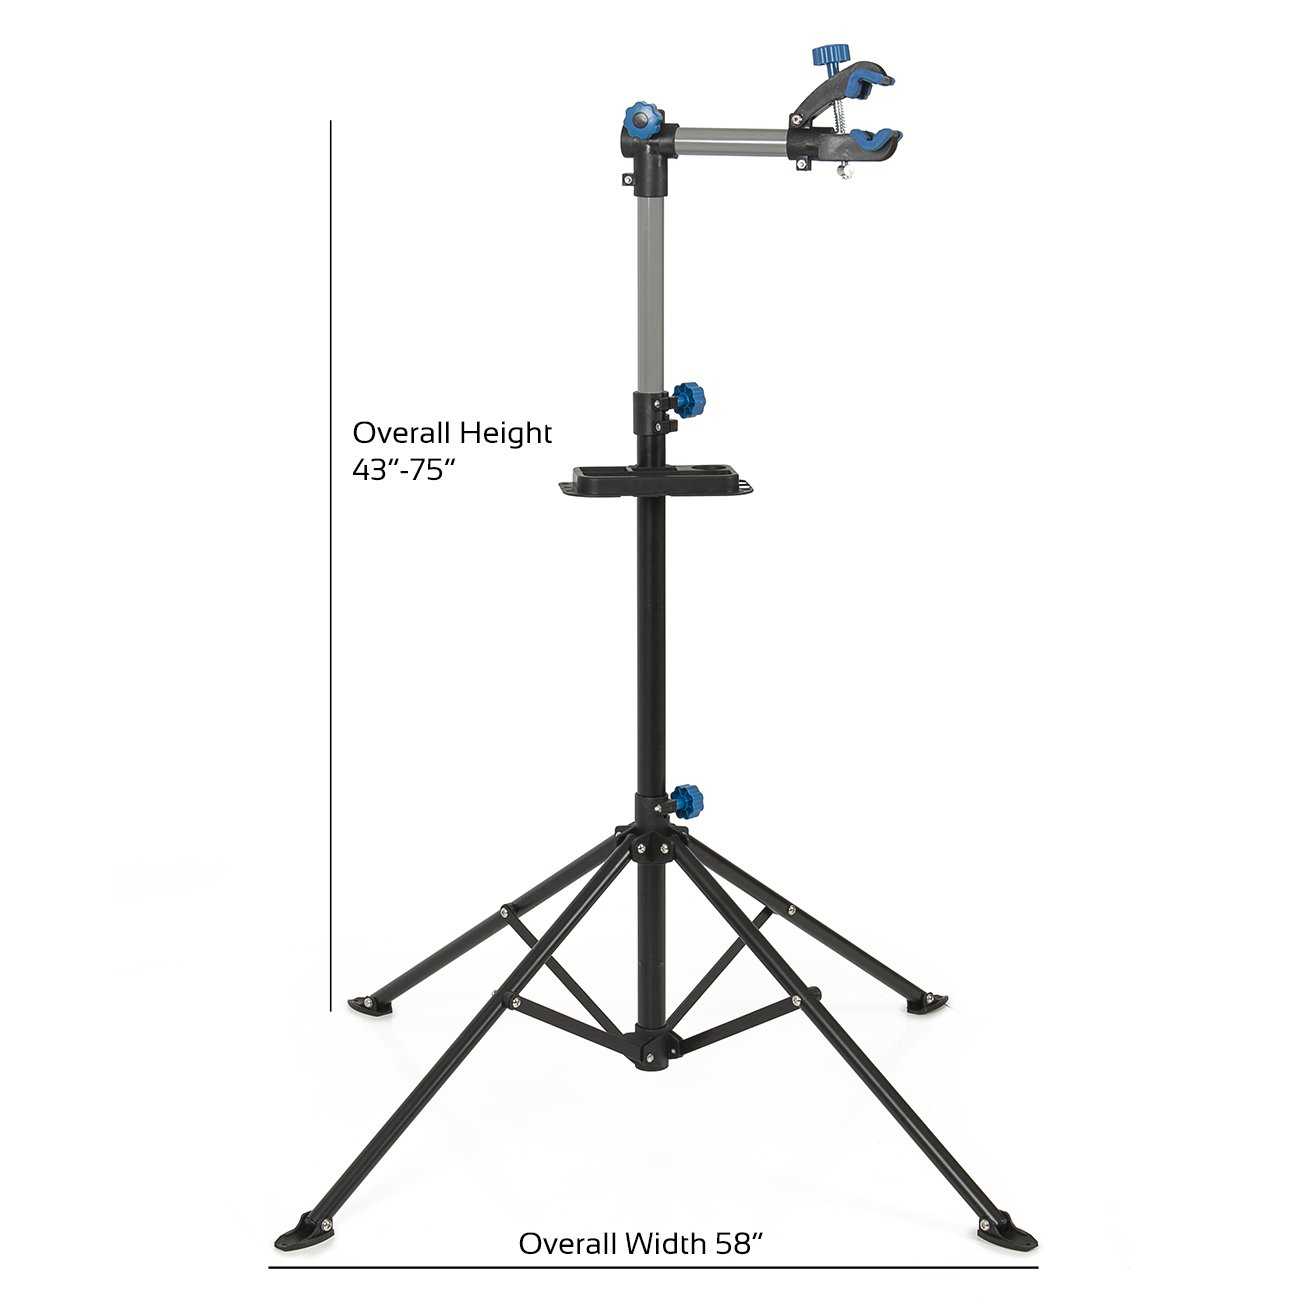 ARKSEN Pro Bike Adjustable 43'' to 75'' Repair Stand w/Telescopic Arm Bicycle Cycle Rack by ARKSEN (Image #2)